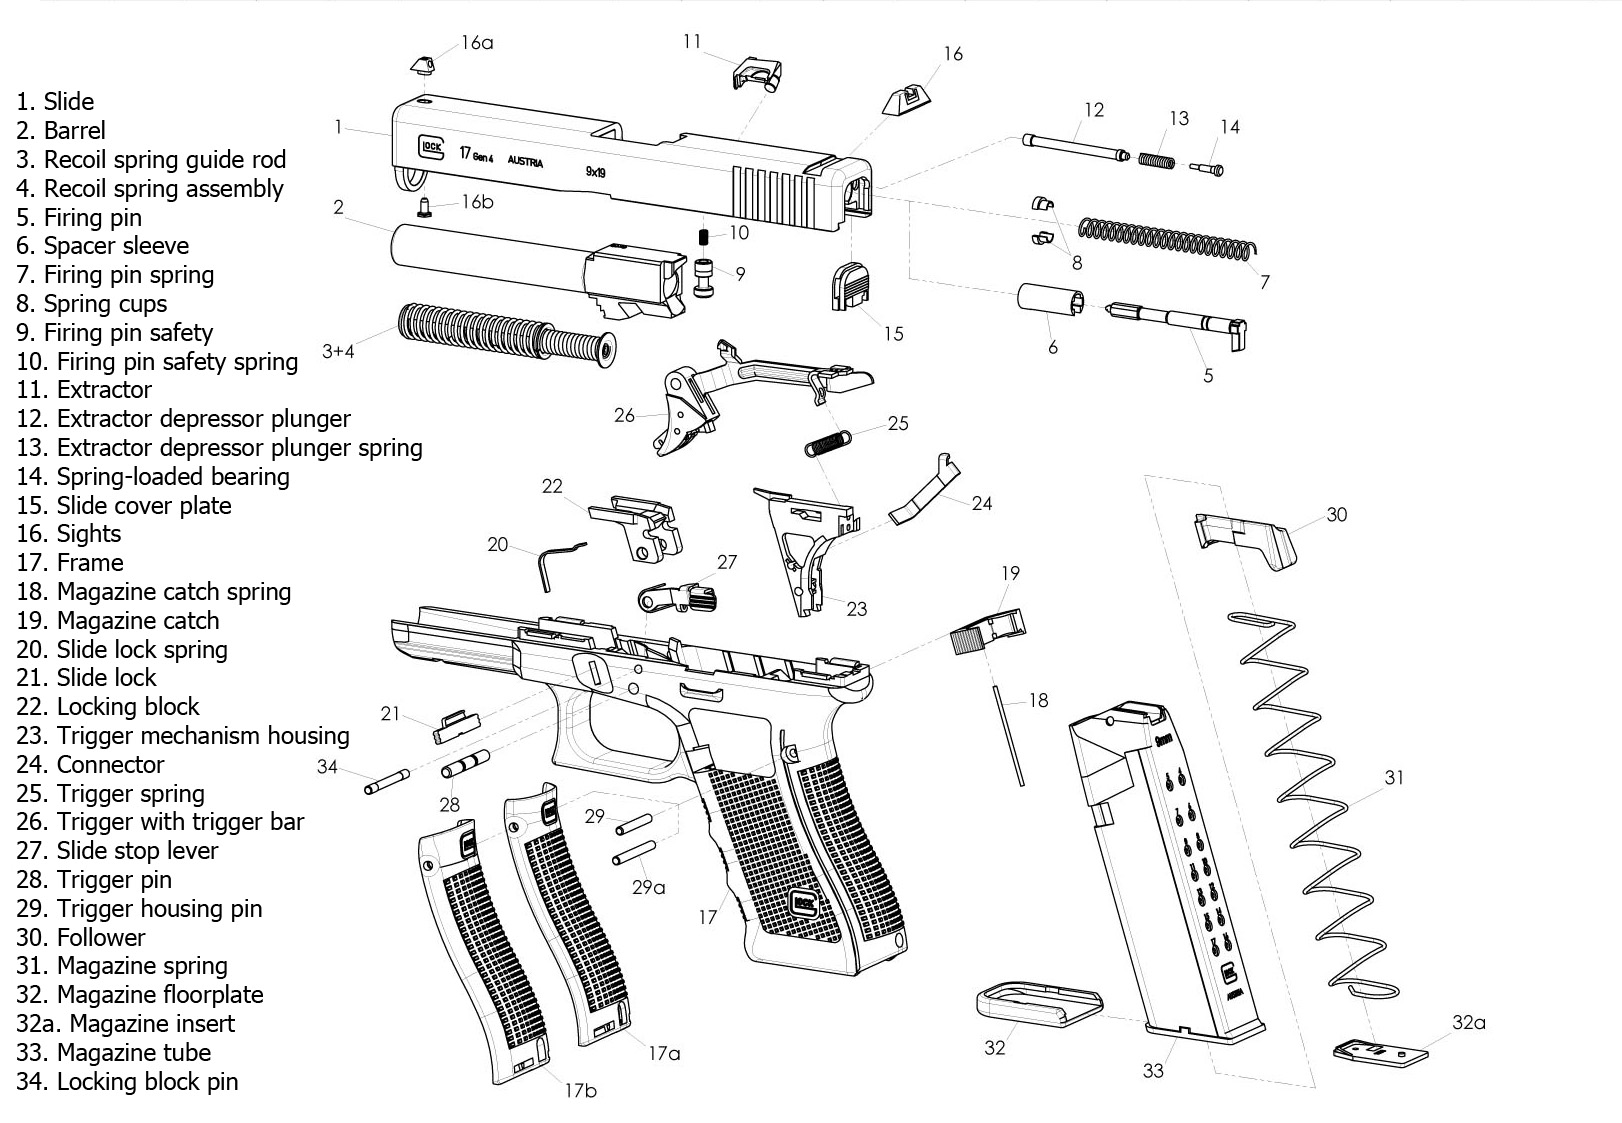 glock 17 generation 4 exploded view diagram muzzle first rh muzzlefirst com glock diagram poster glock diagram poster